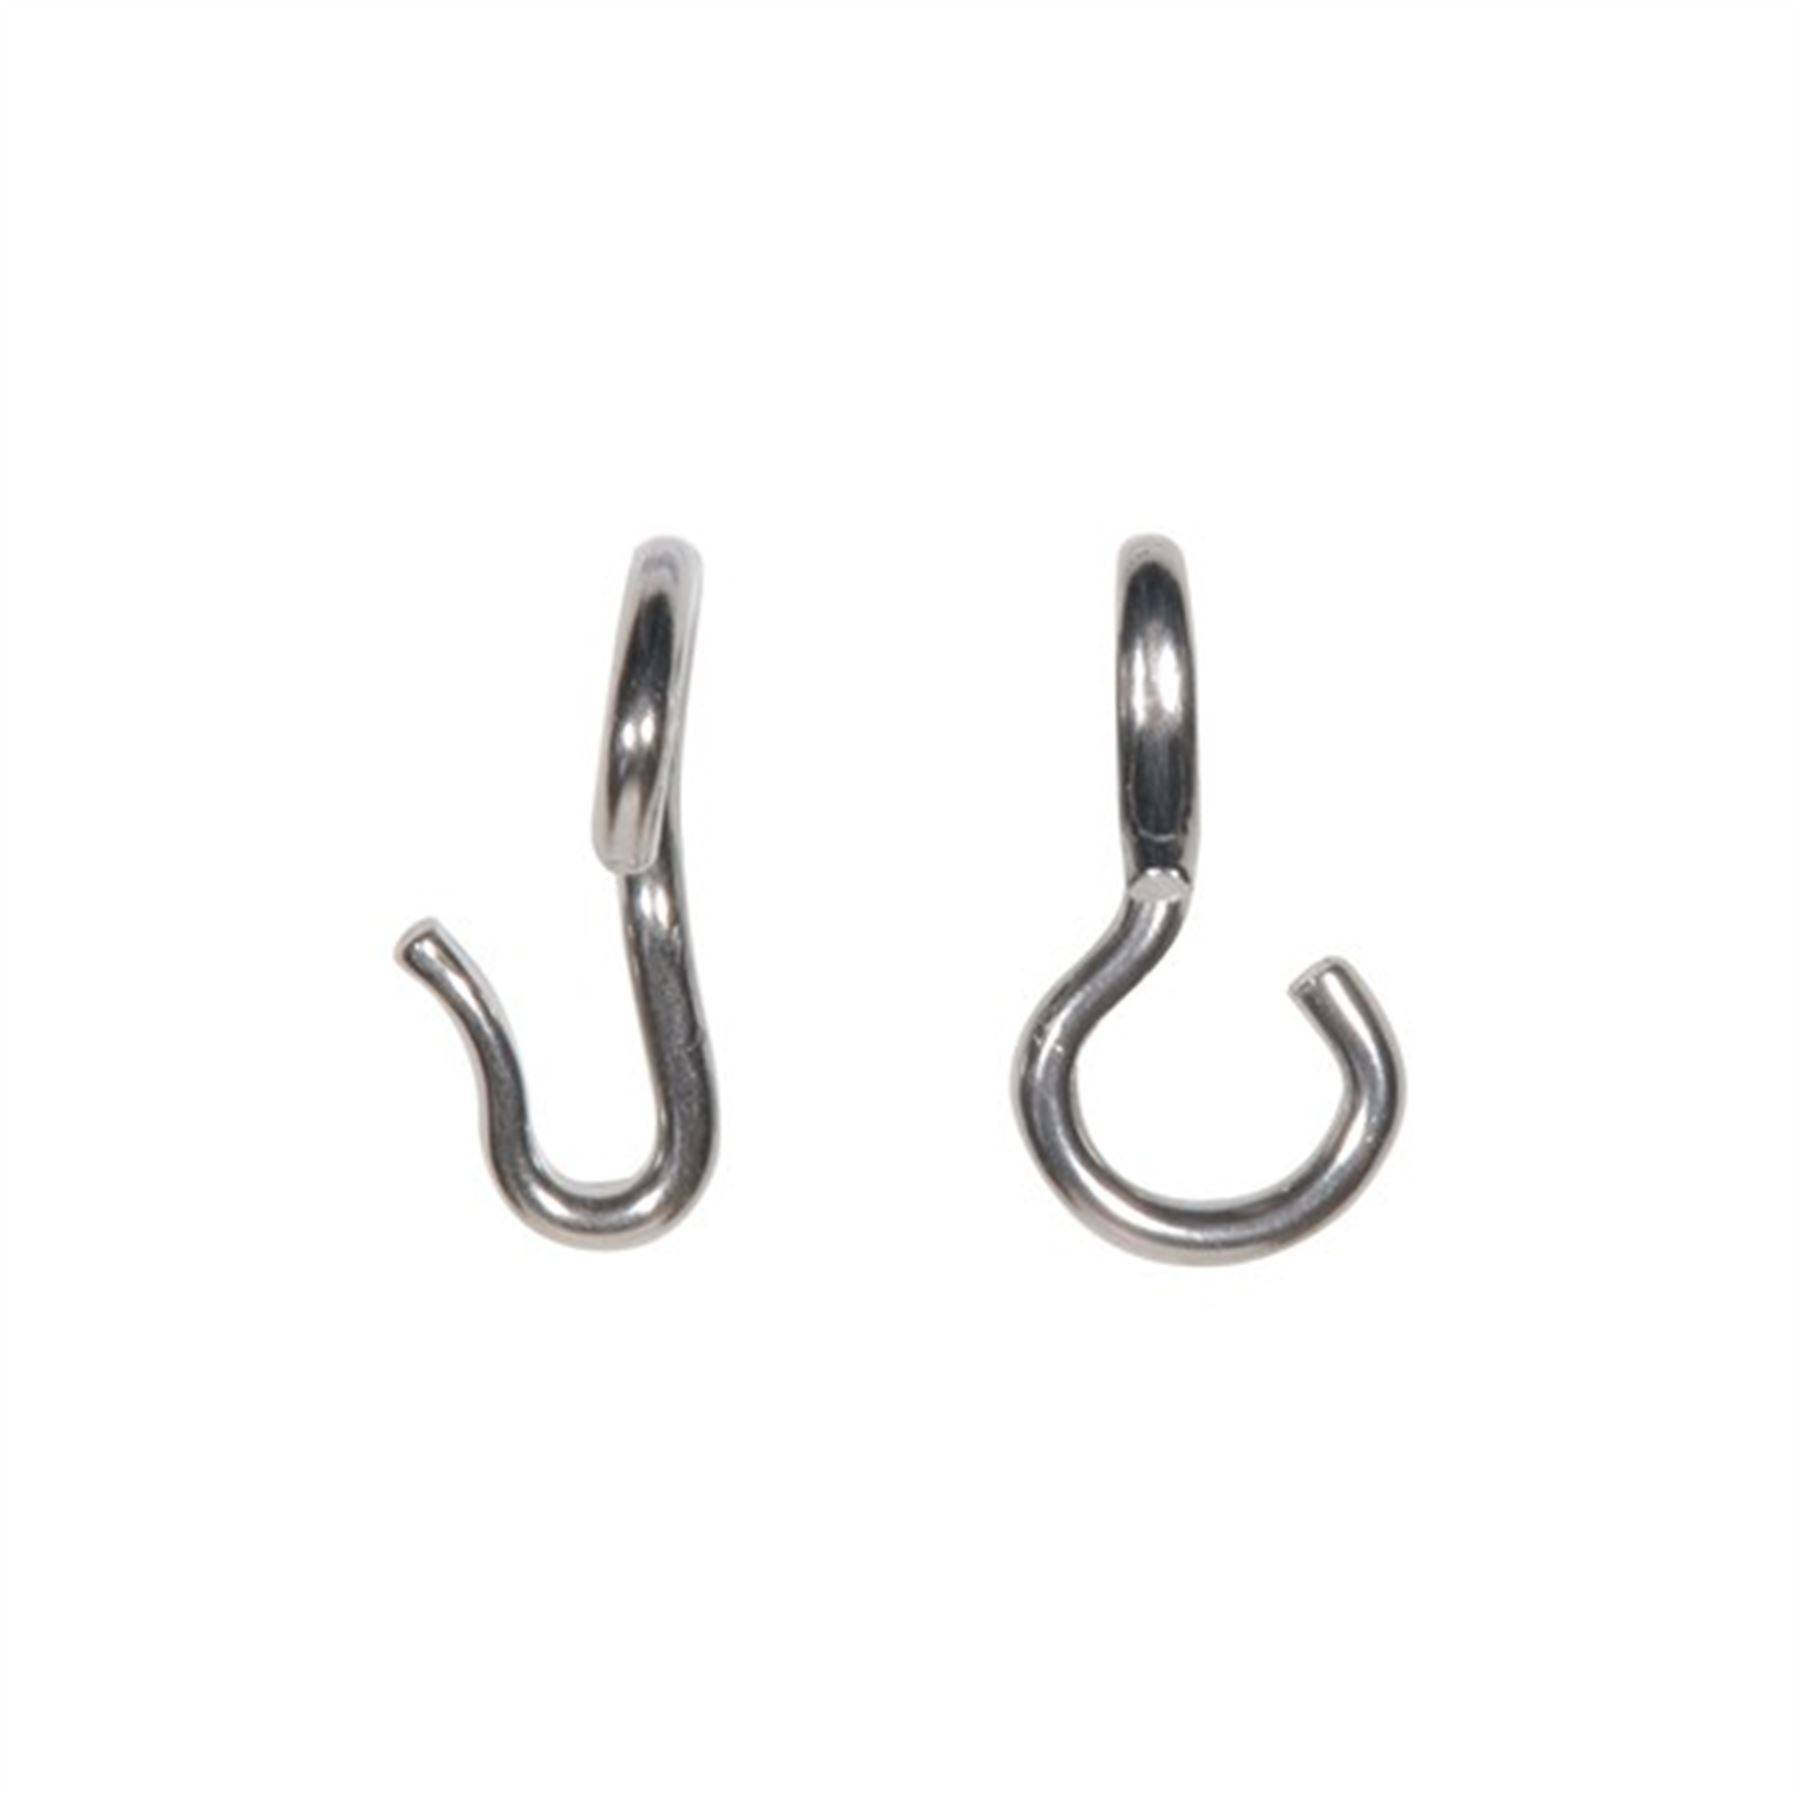 Stubby Never Rust Curb Hooks In English At Schneider Saddlery